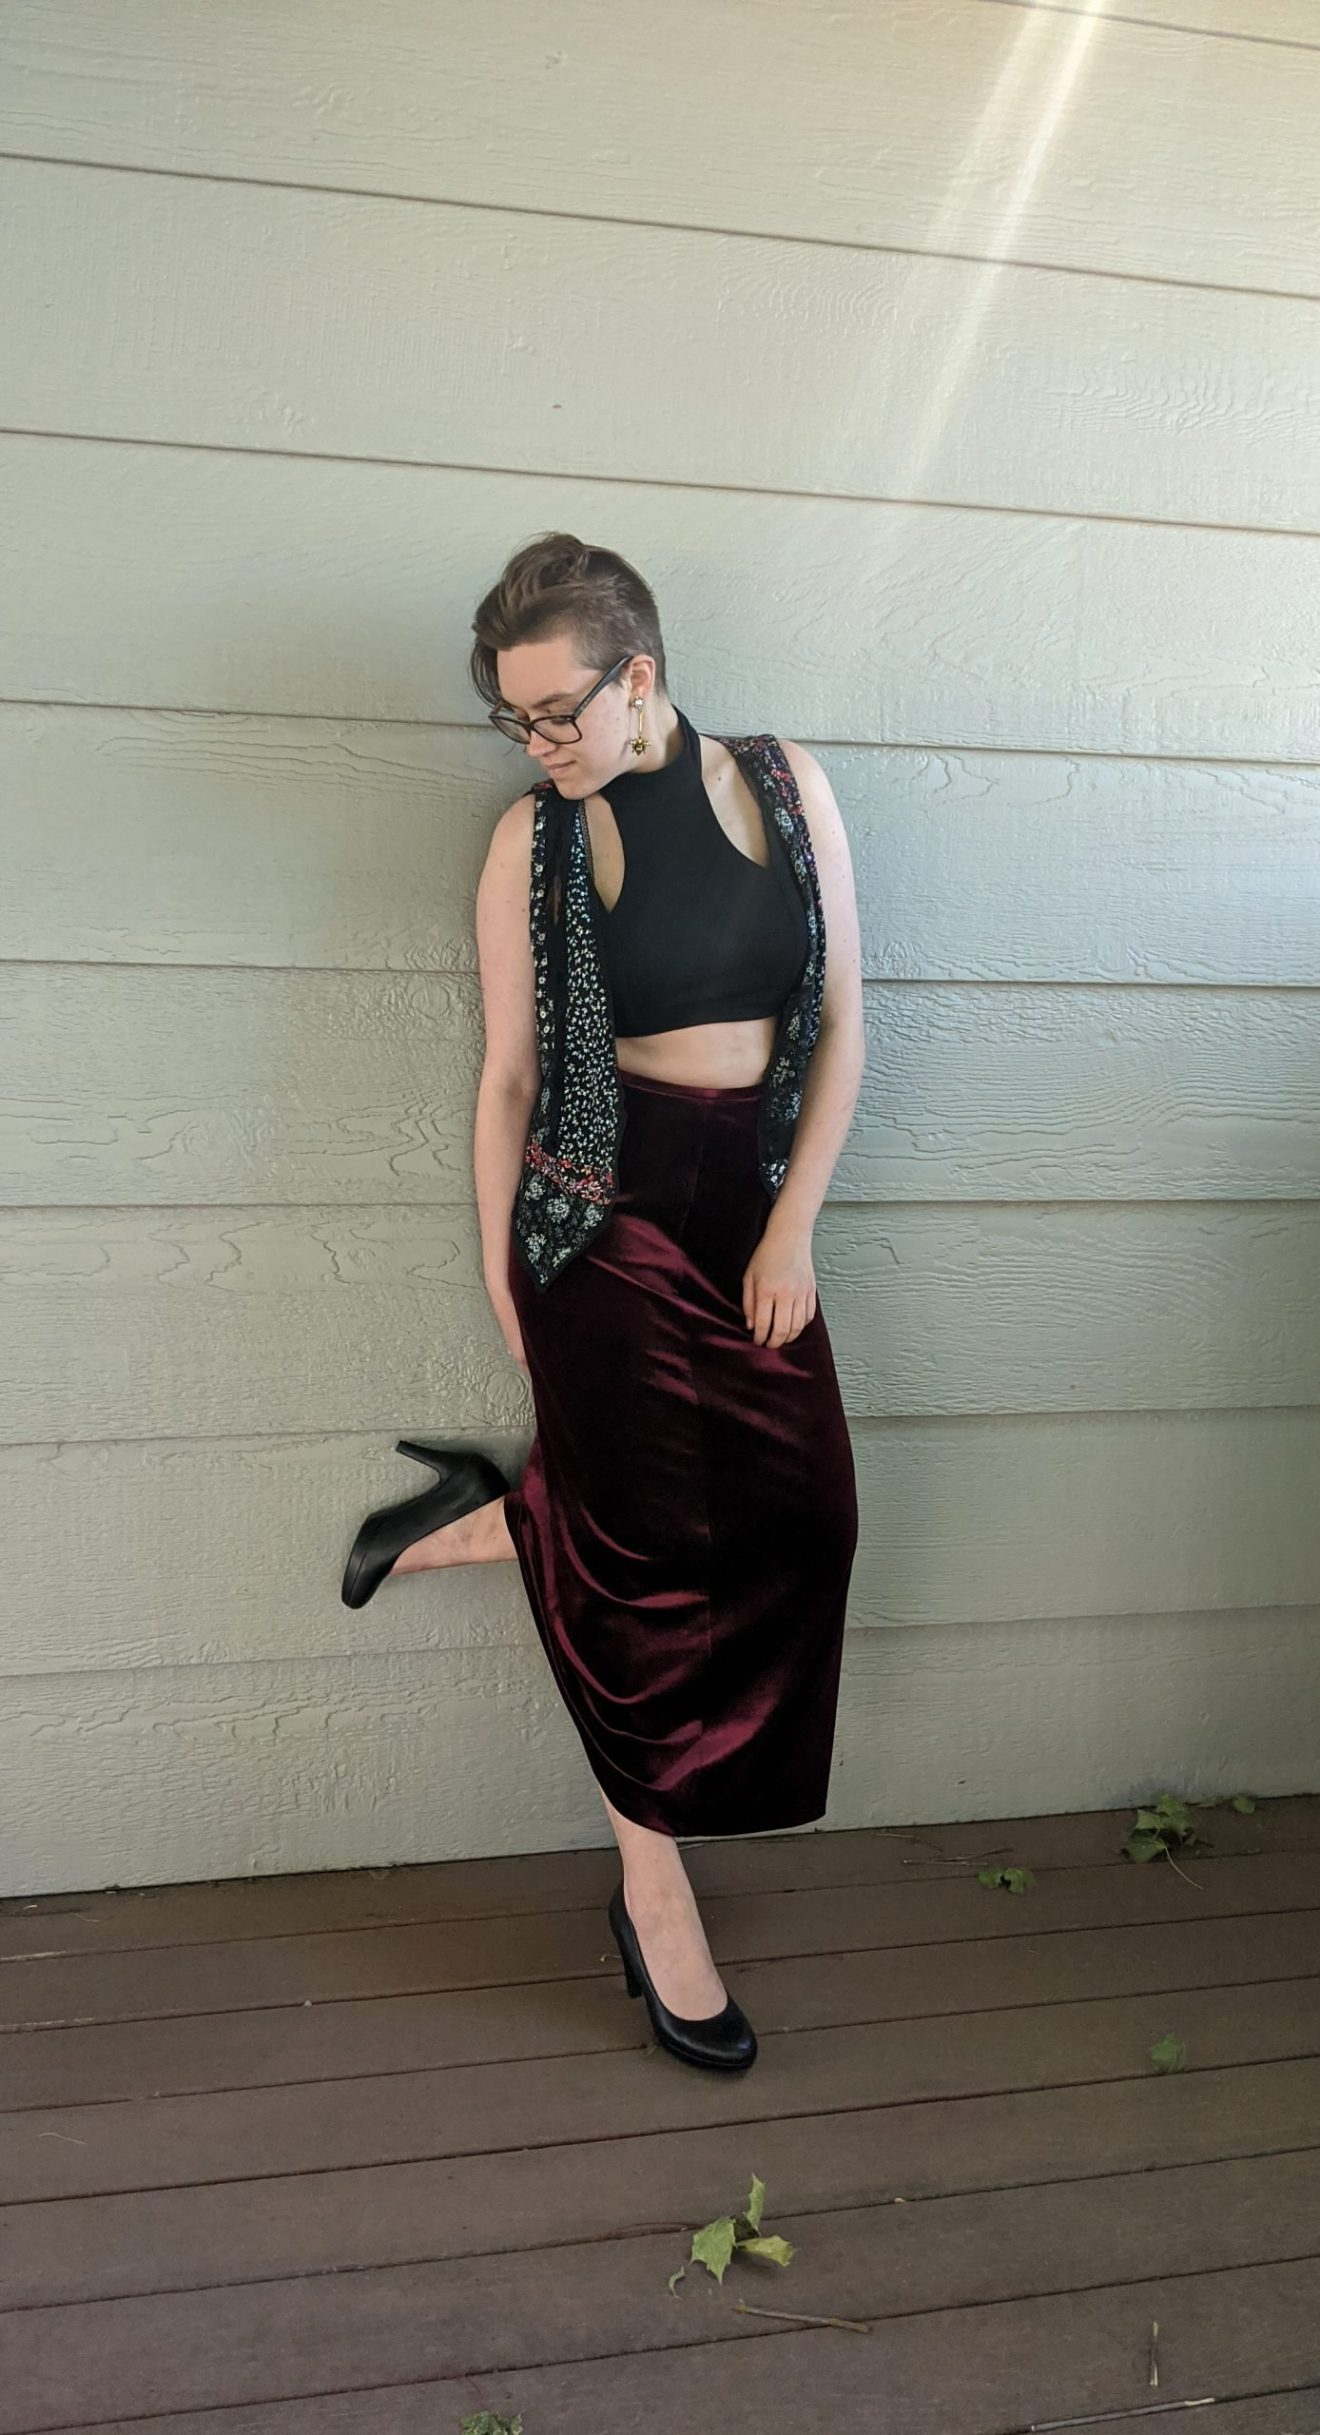 I Feared Waking Up Alissa Ackerman Story Behind The Cloth fashion blog vintage antique witchy bohemian outfit 35 scaled